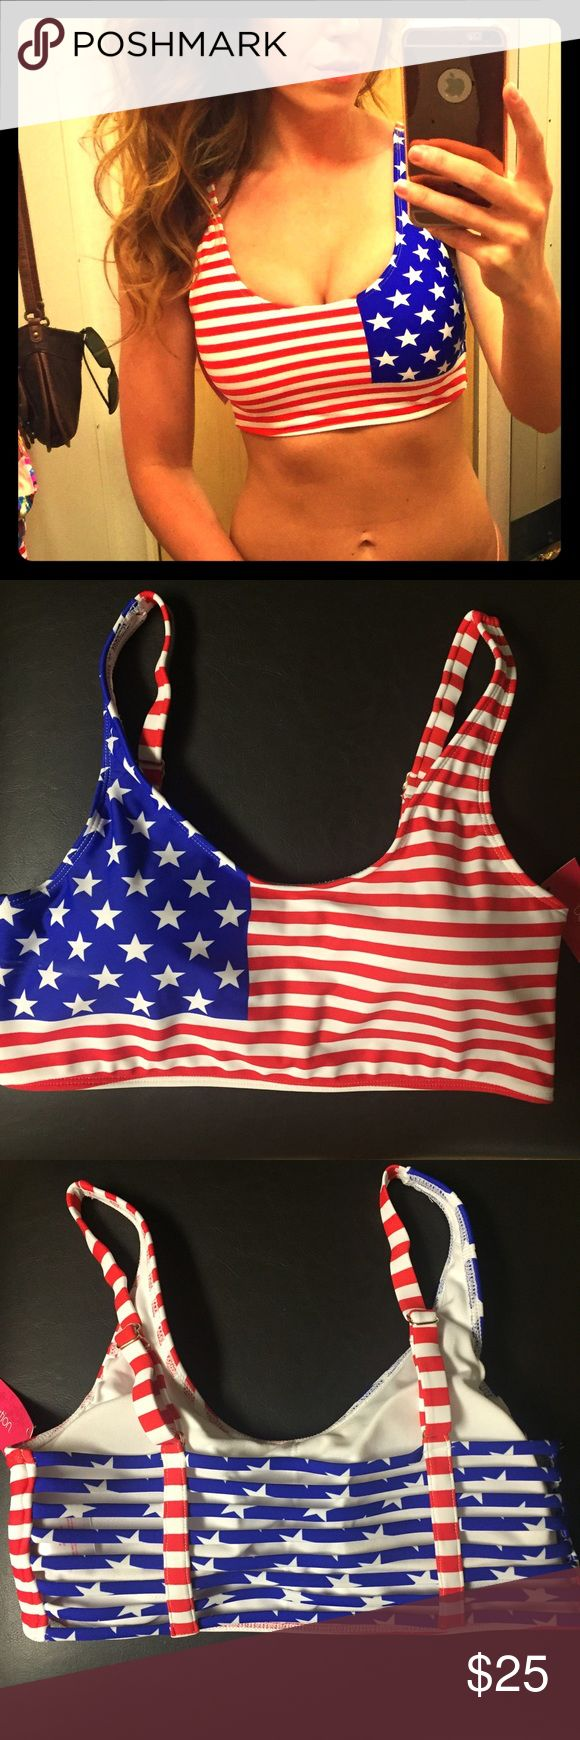 Stars and Stripes bikini top Red, white and blue top size M- cute straps on the back. NWT unable to return- perfect for a  4th of July pool party! will ship righty away❗️ Xhilaration Swim Bikinis